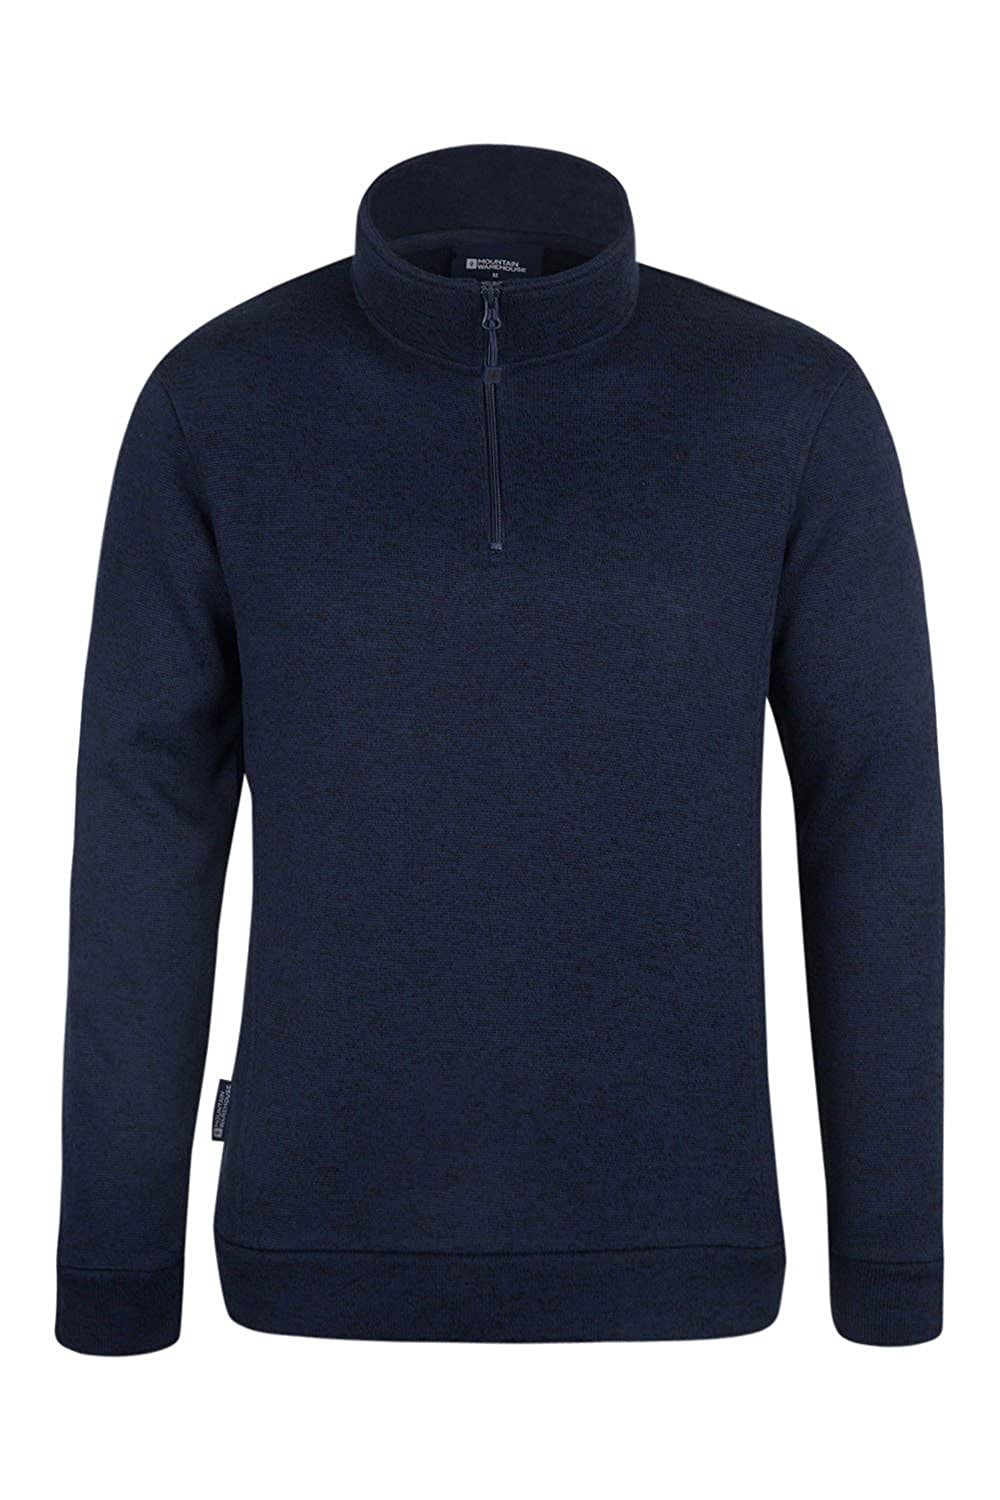 Mountain Warehouse Idris Fleece-Pulli für Herren